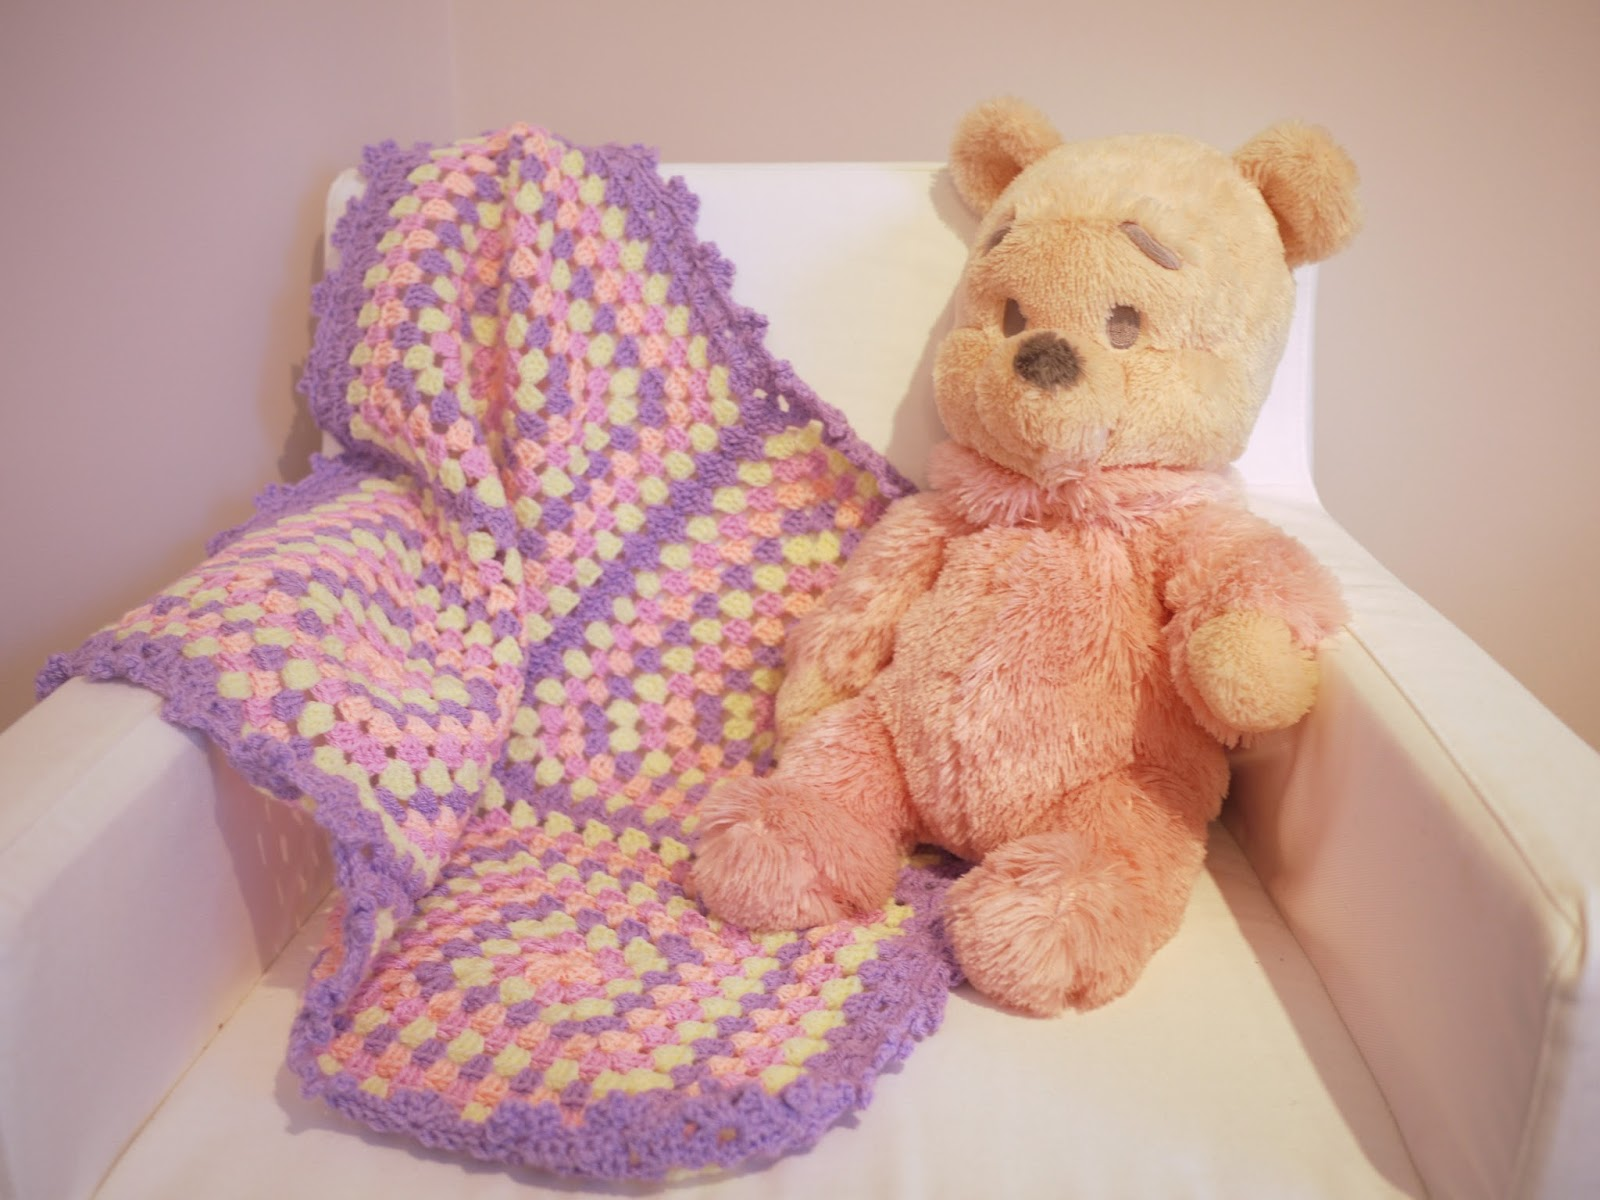 Crochet Stitches Bella Coco : Crochet blanket colour scheme inspiration - Bella Coco by Sarah-Jayne